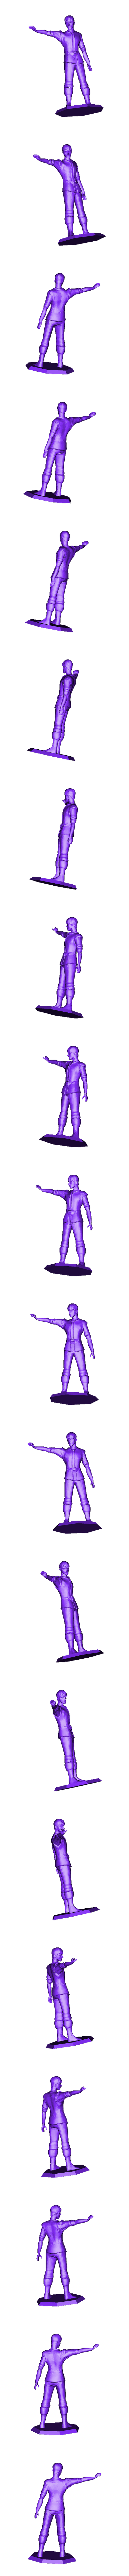 YoungLord_ArmRaised.stl Download free STL file Young Hero (multiple poses) • 3D print object, stockto